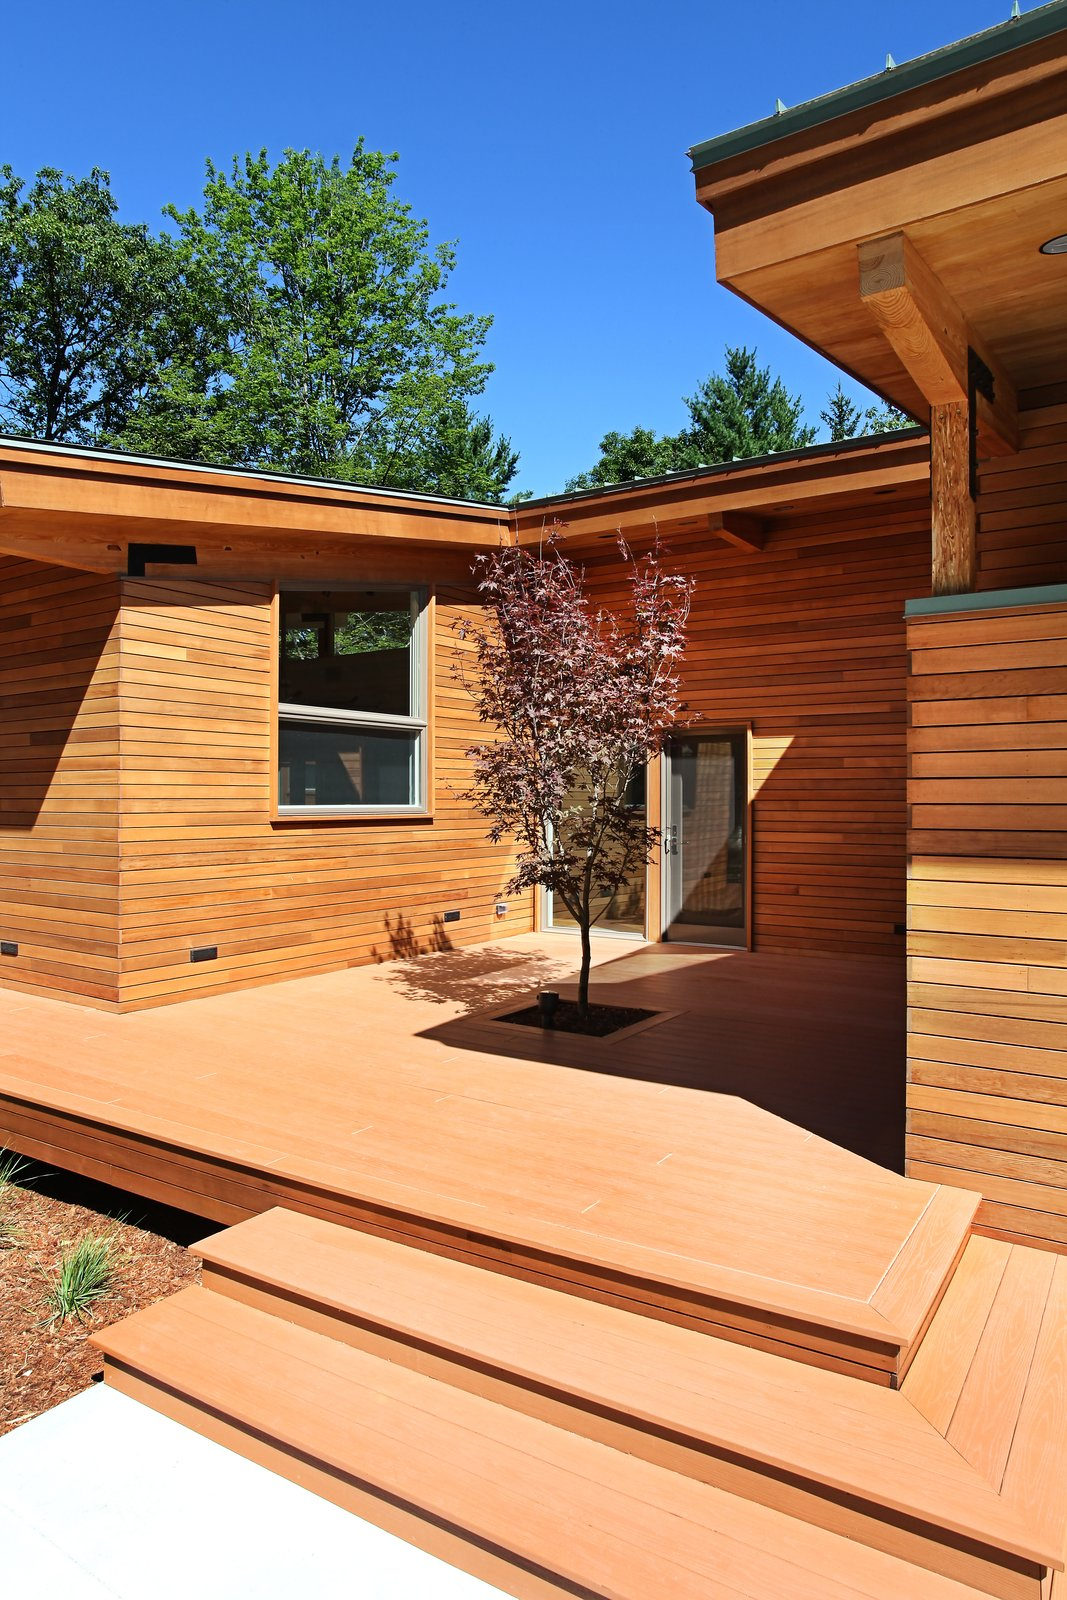 Entry courtyard with tree  Higgins Lake House by Jeff Jordan Architects